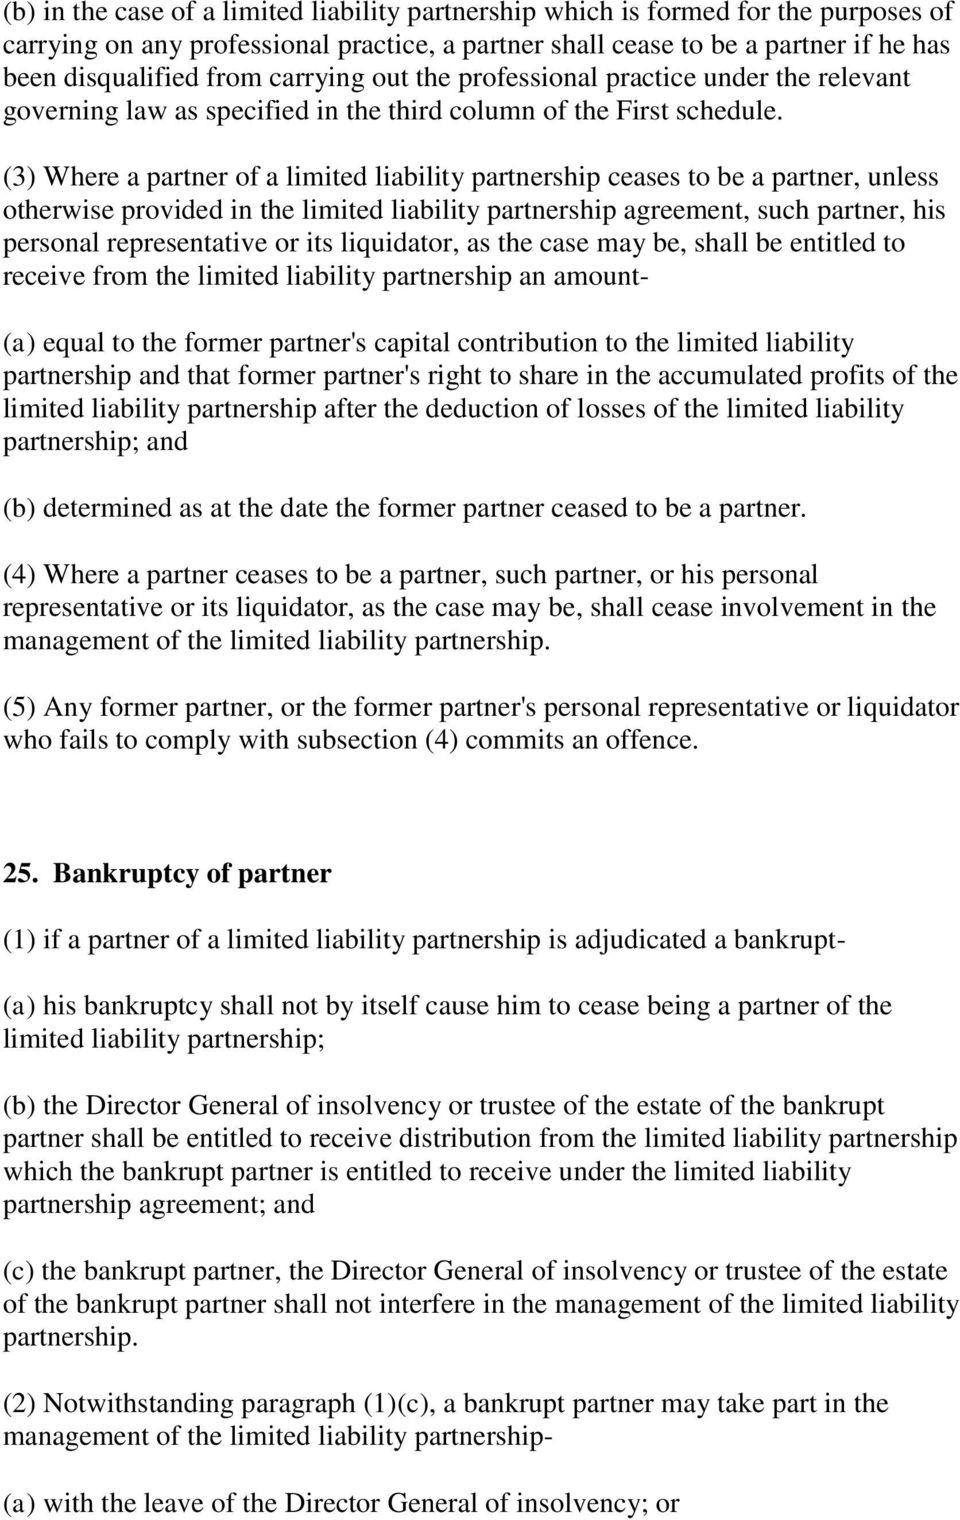 (3) Where a partner of a limited liability partnership ceases to be a partner, unless otherwise provided in the limited liability partnership agreement, such partner, his personal representative or